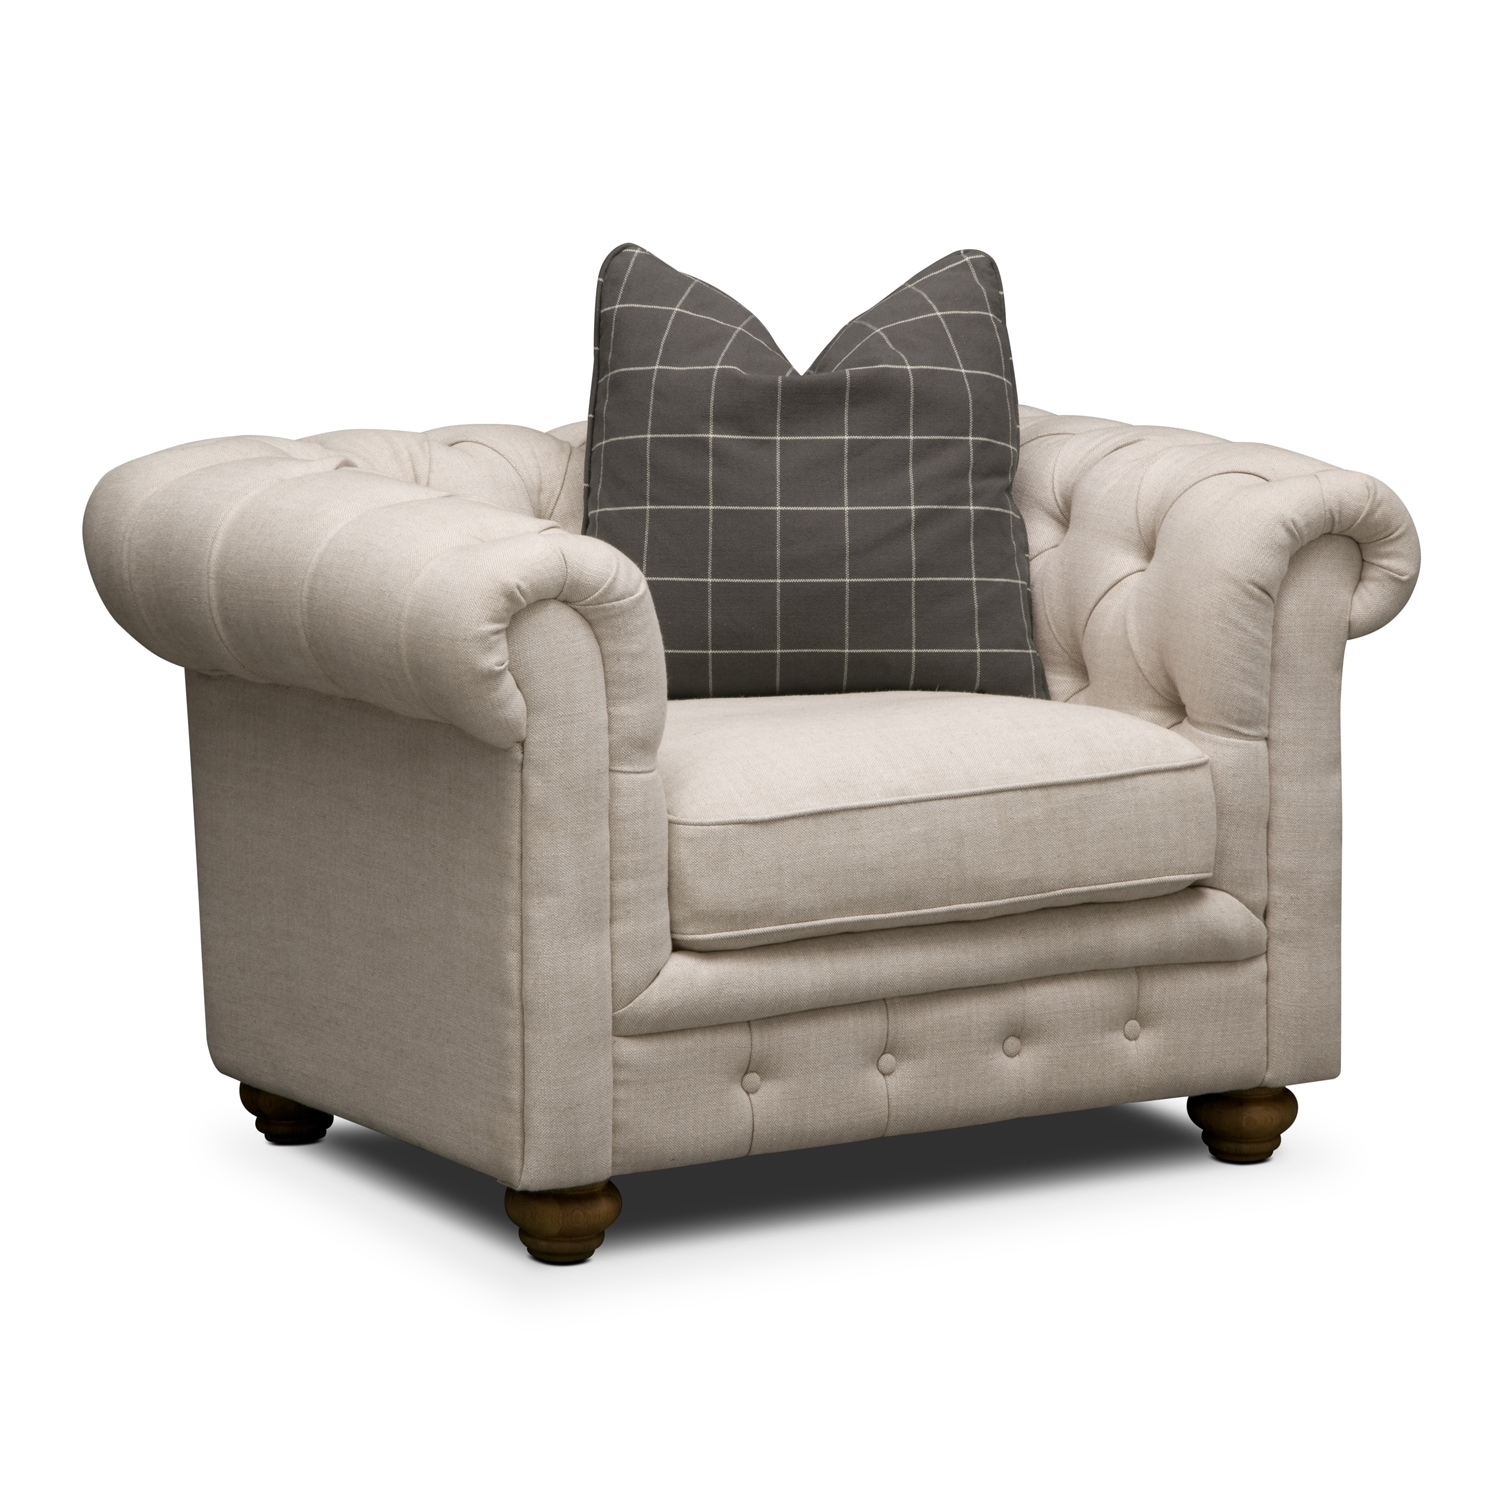 Living Room Furniture - Madeline Chair